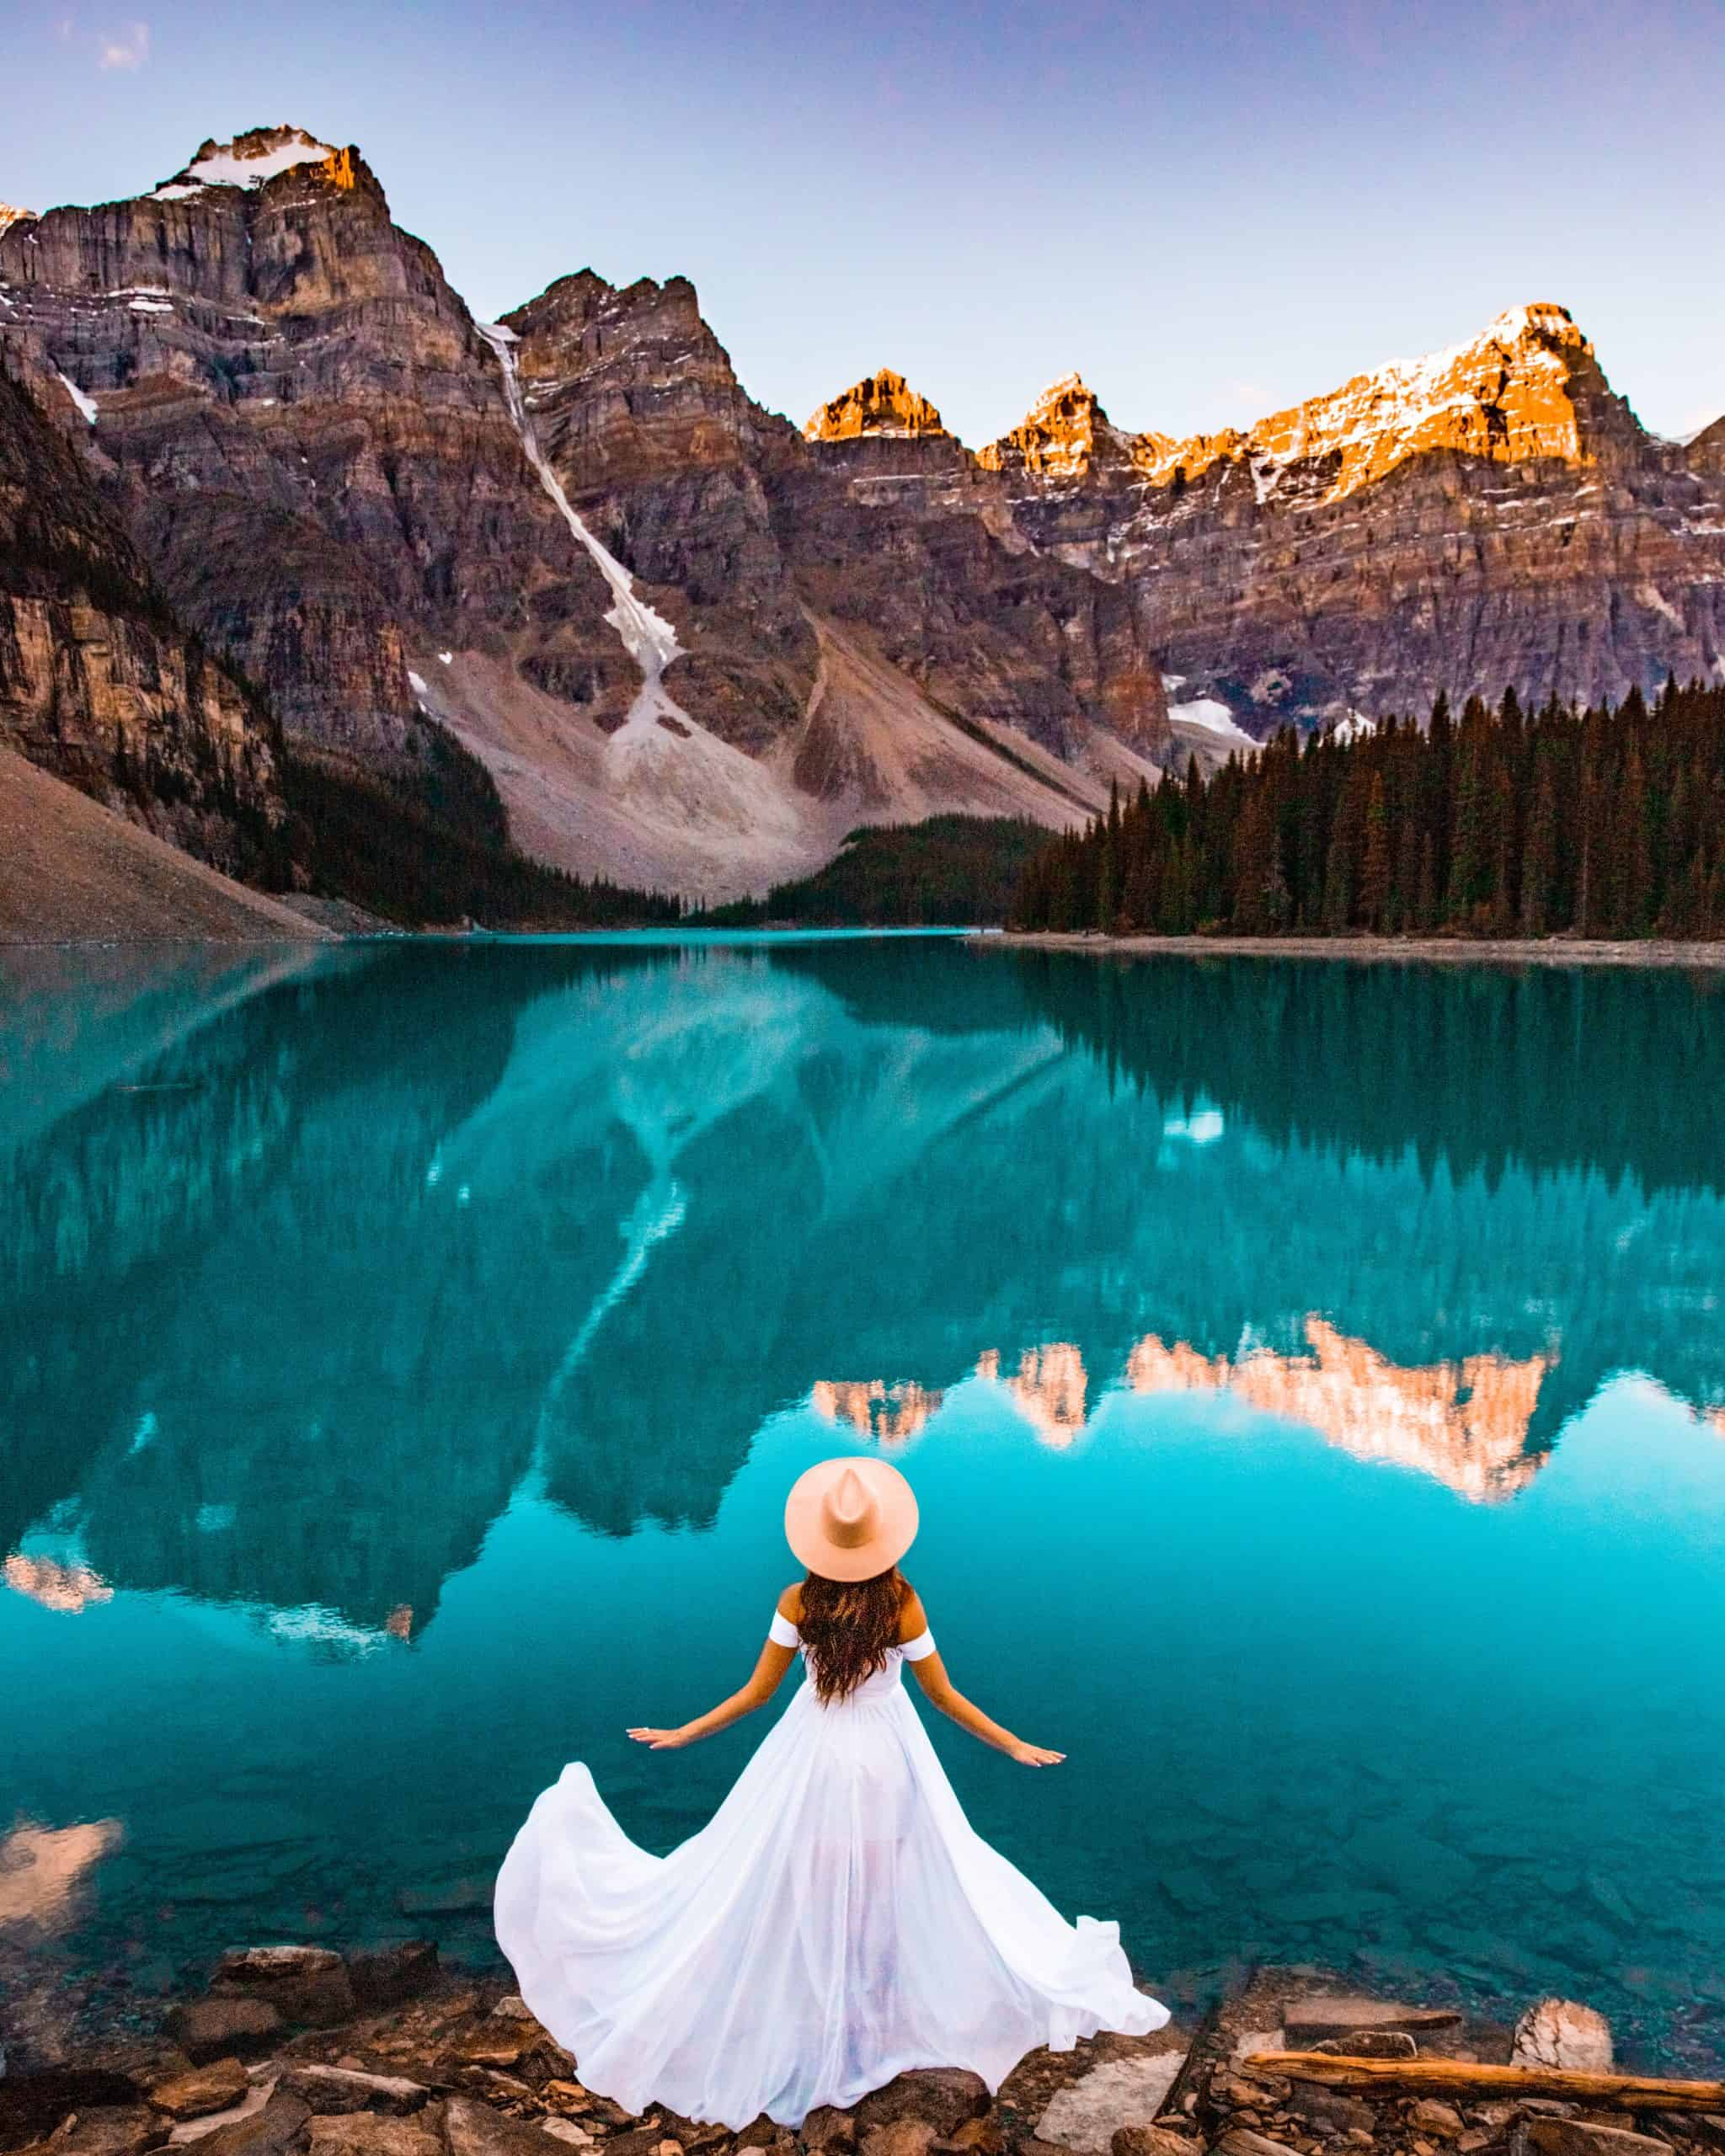 Bettina in White Dress Watching Sunrise at Moraine Lake